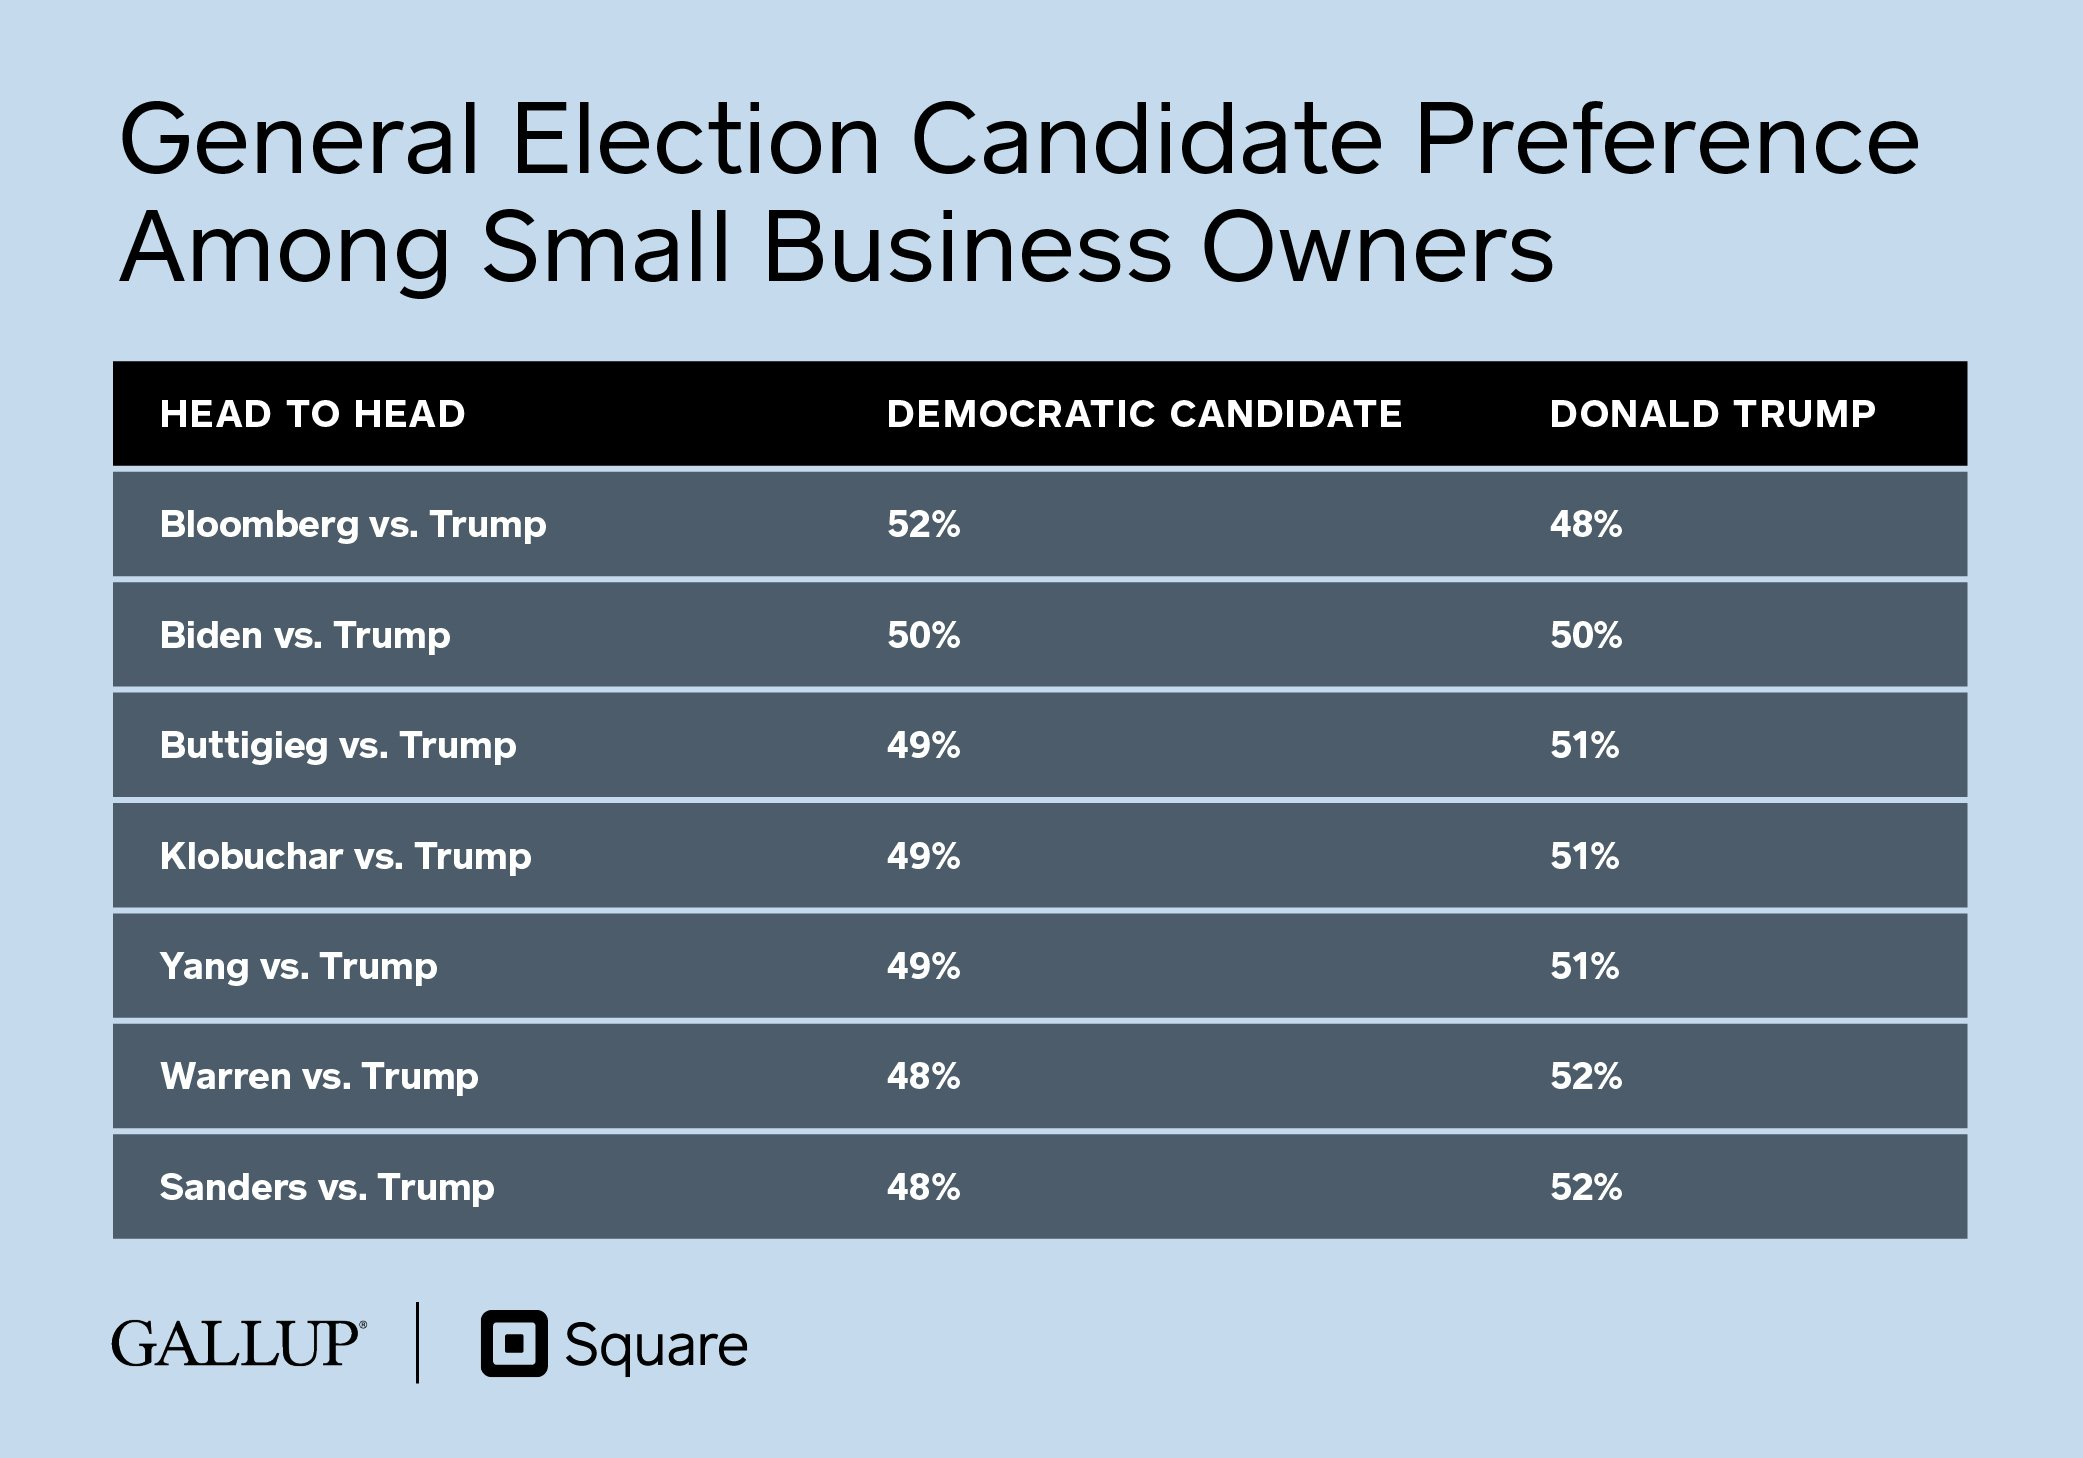 General Election Candidate Preference Among SMBs